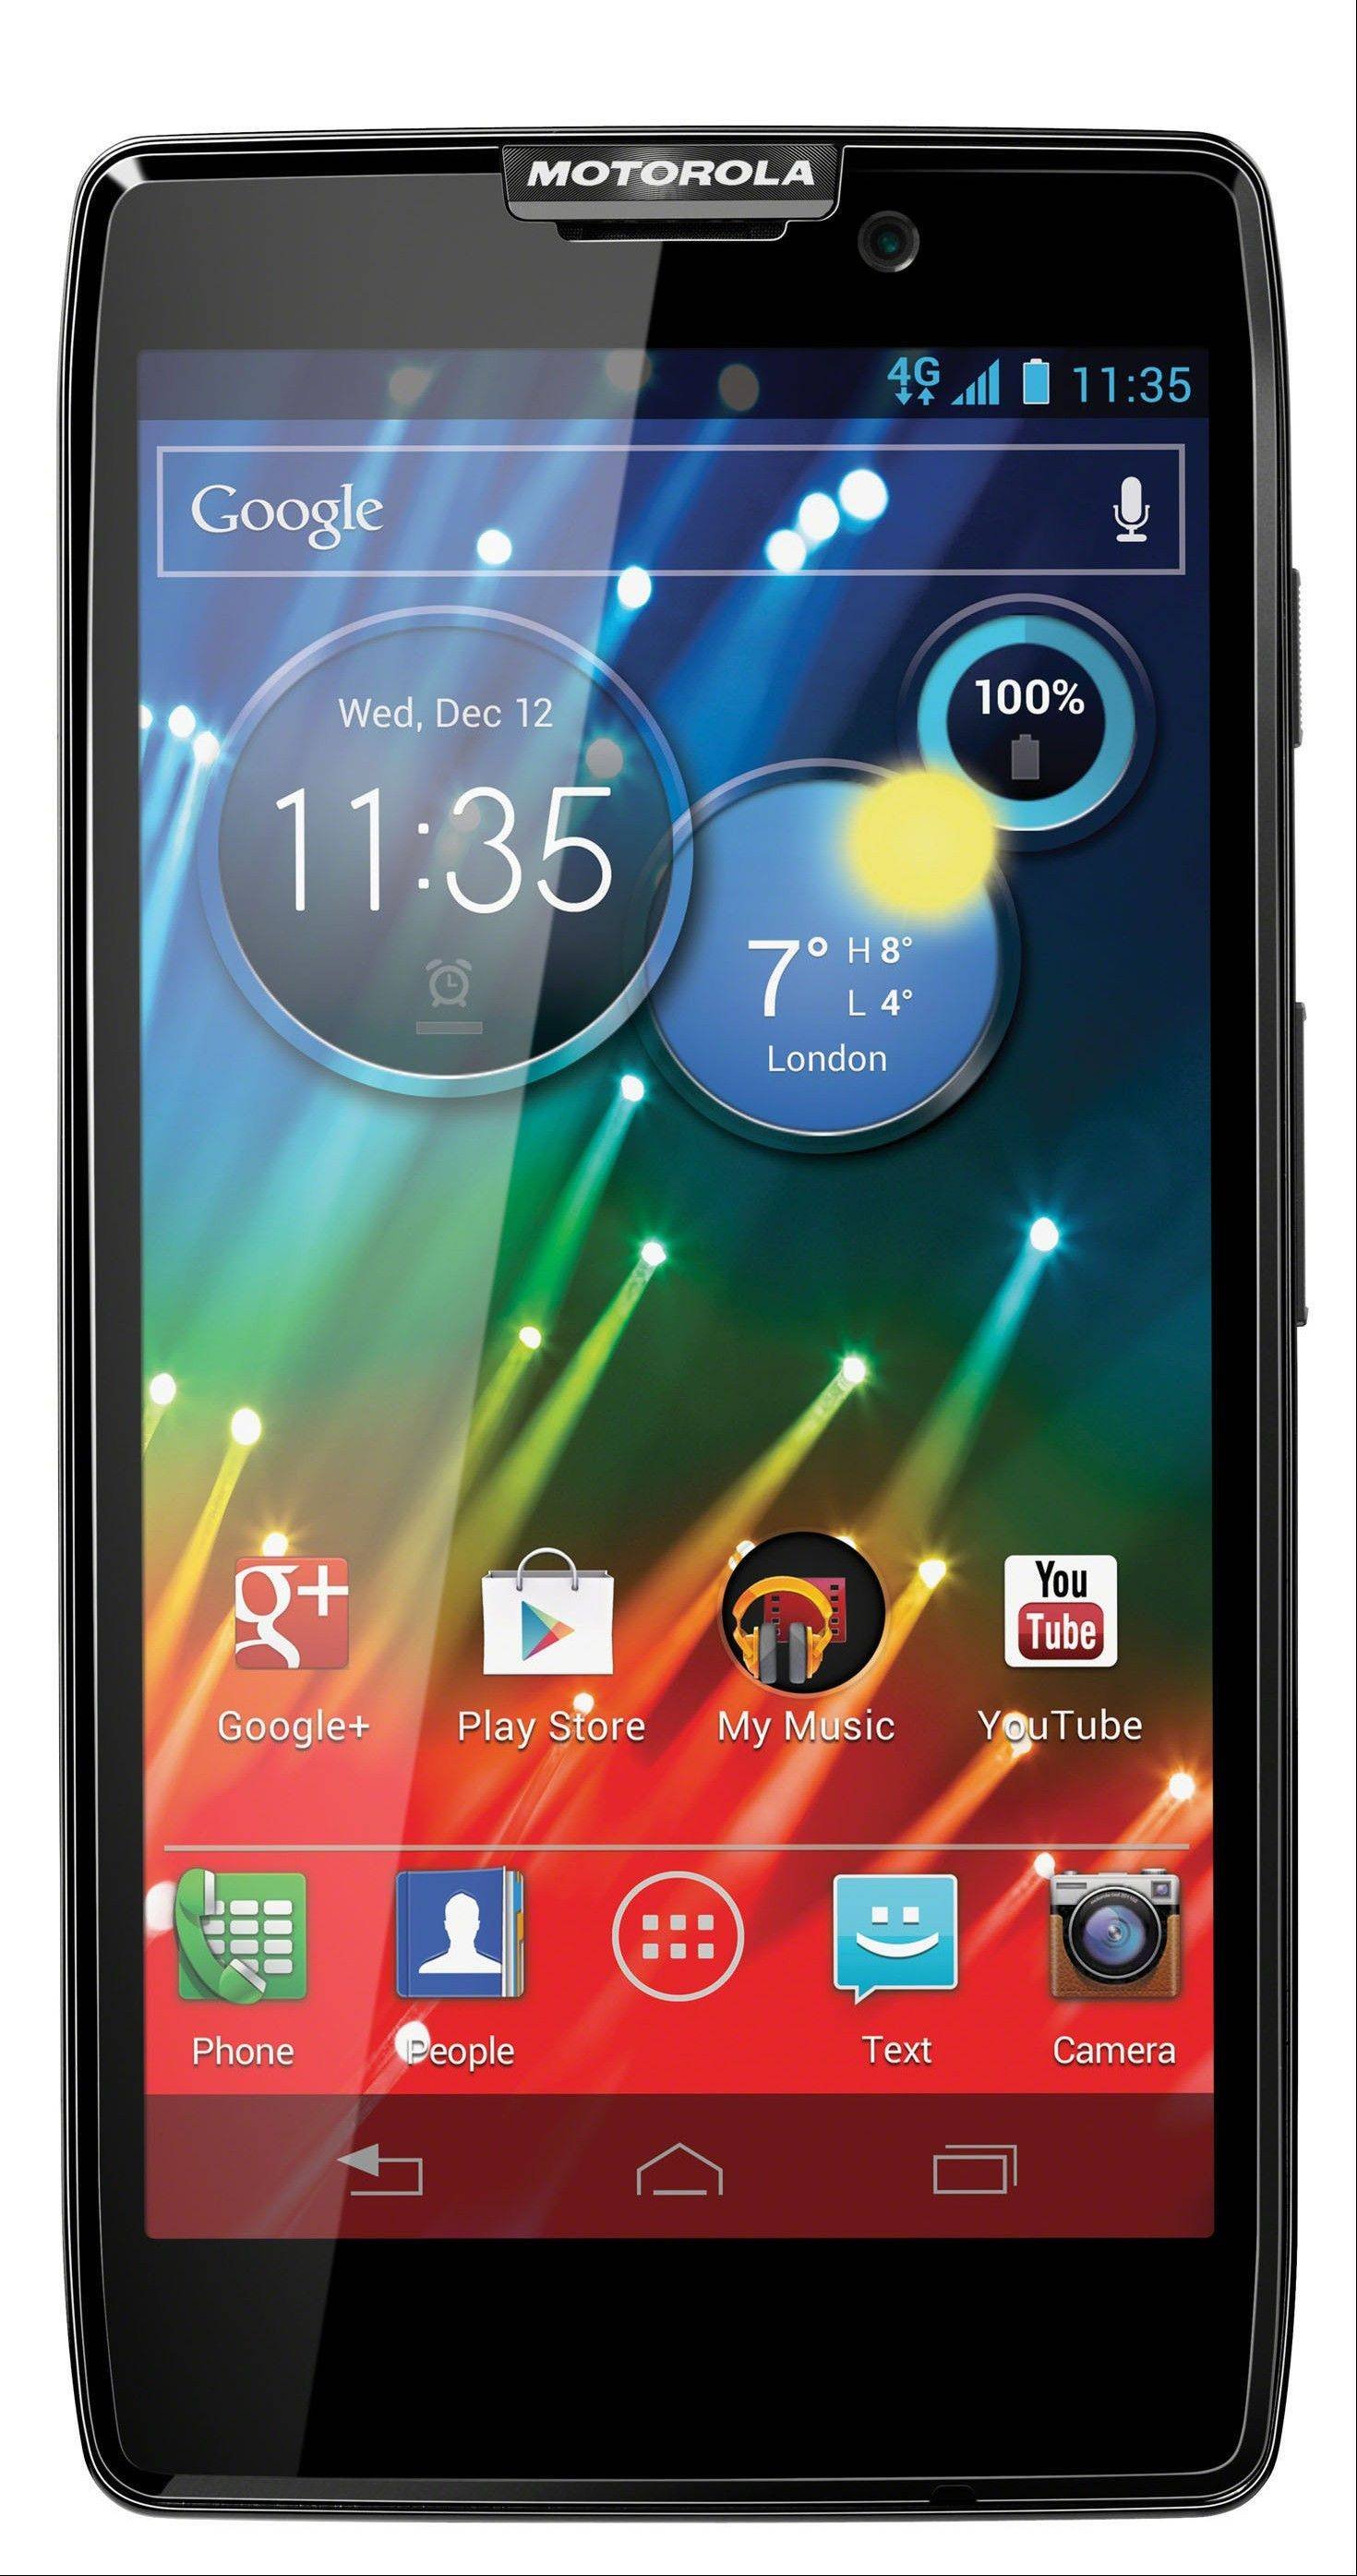 Motorola RAZR HD is one of the many products sold by Motorola Mobility.